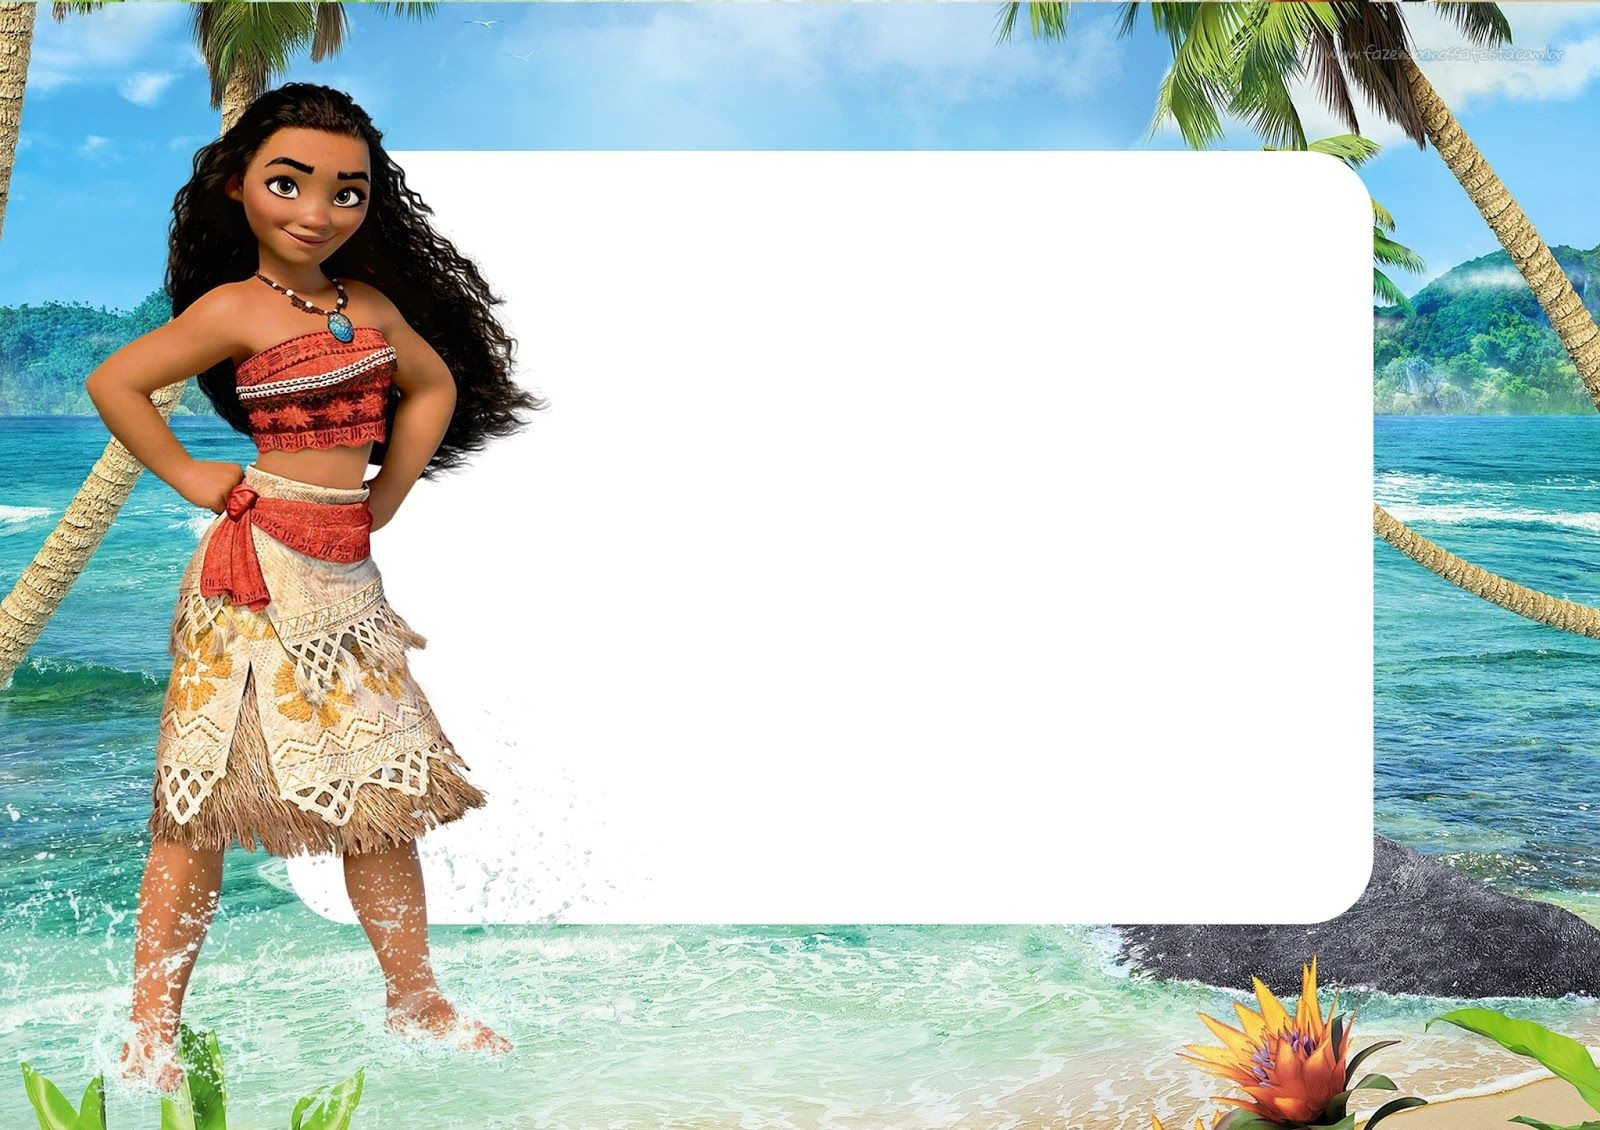 photograph regarding Moana Printable Invitations titled Absolutely free Printable Moana Banner Cost-free Printable